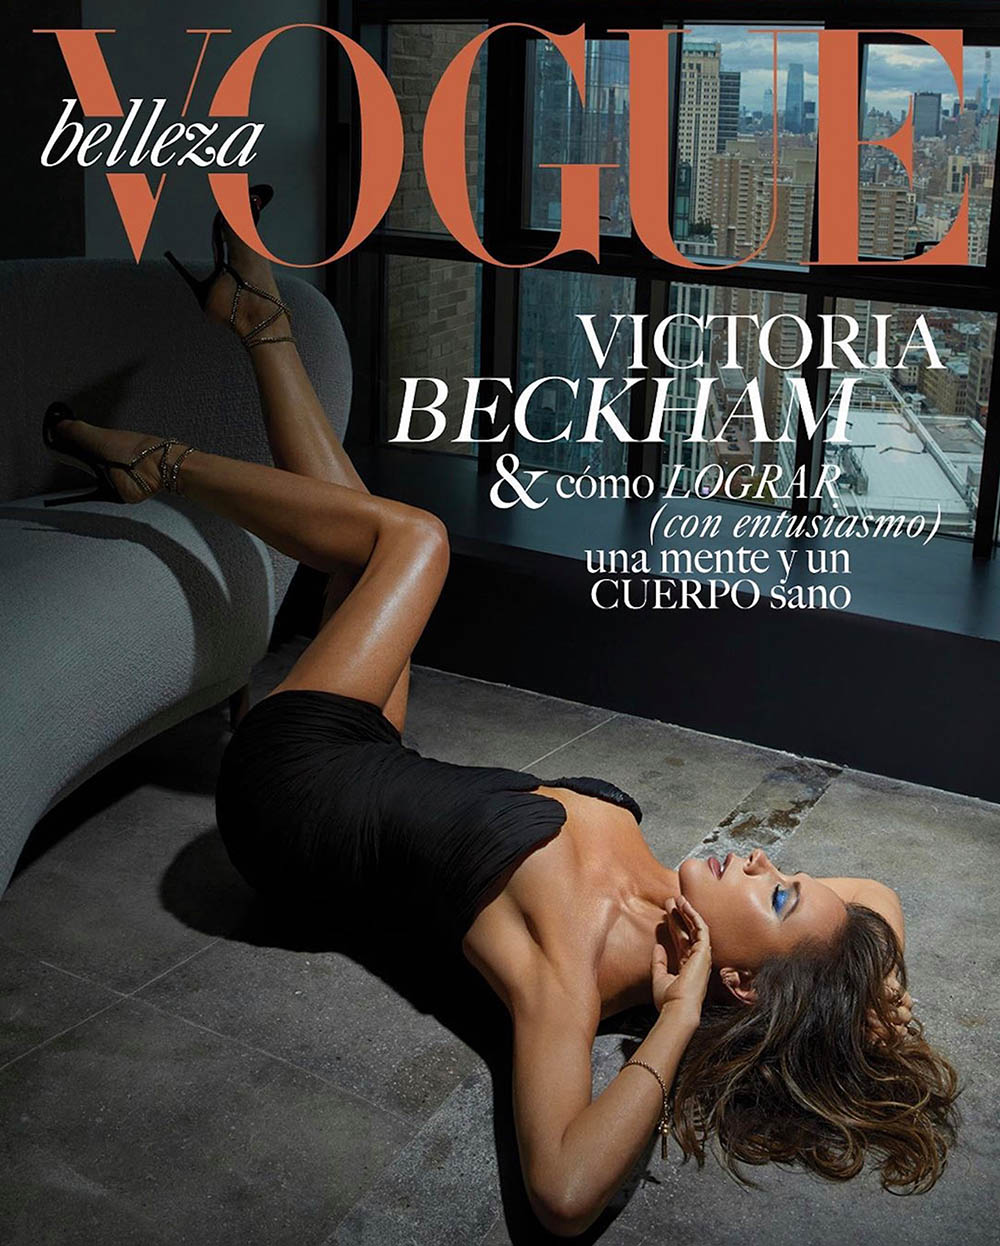 Victoria Beckham covers Vogue Belleza Mexico & Latin America April 2020 by An Le